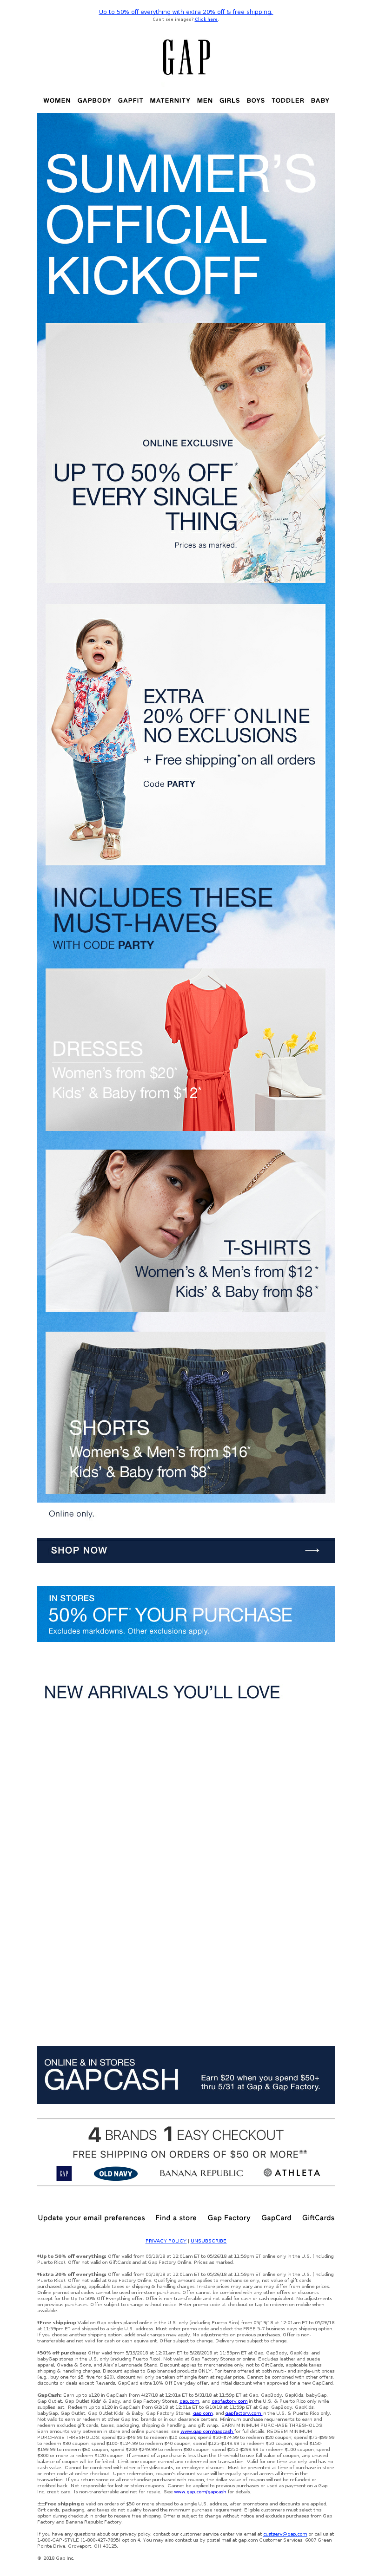 Gap - Redeem your code now! You've been given early Memorial Day deals